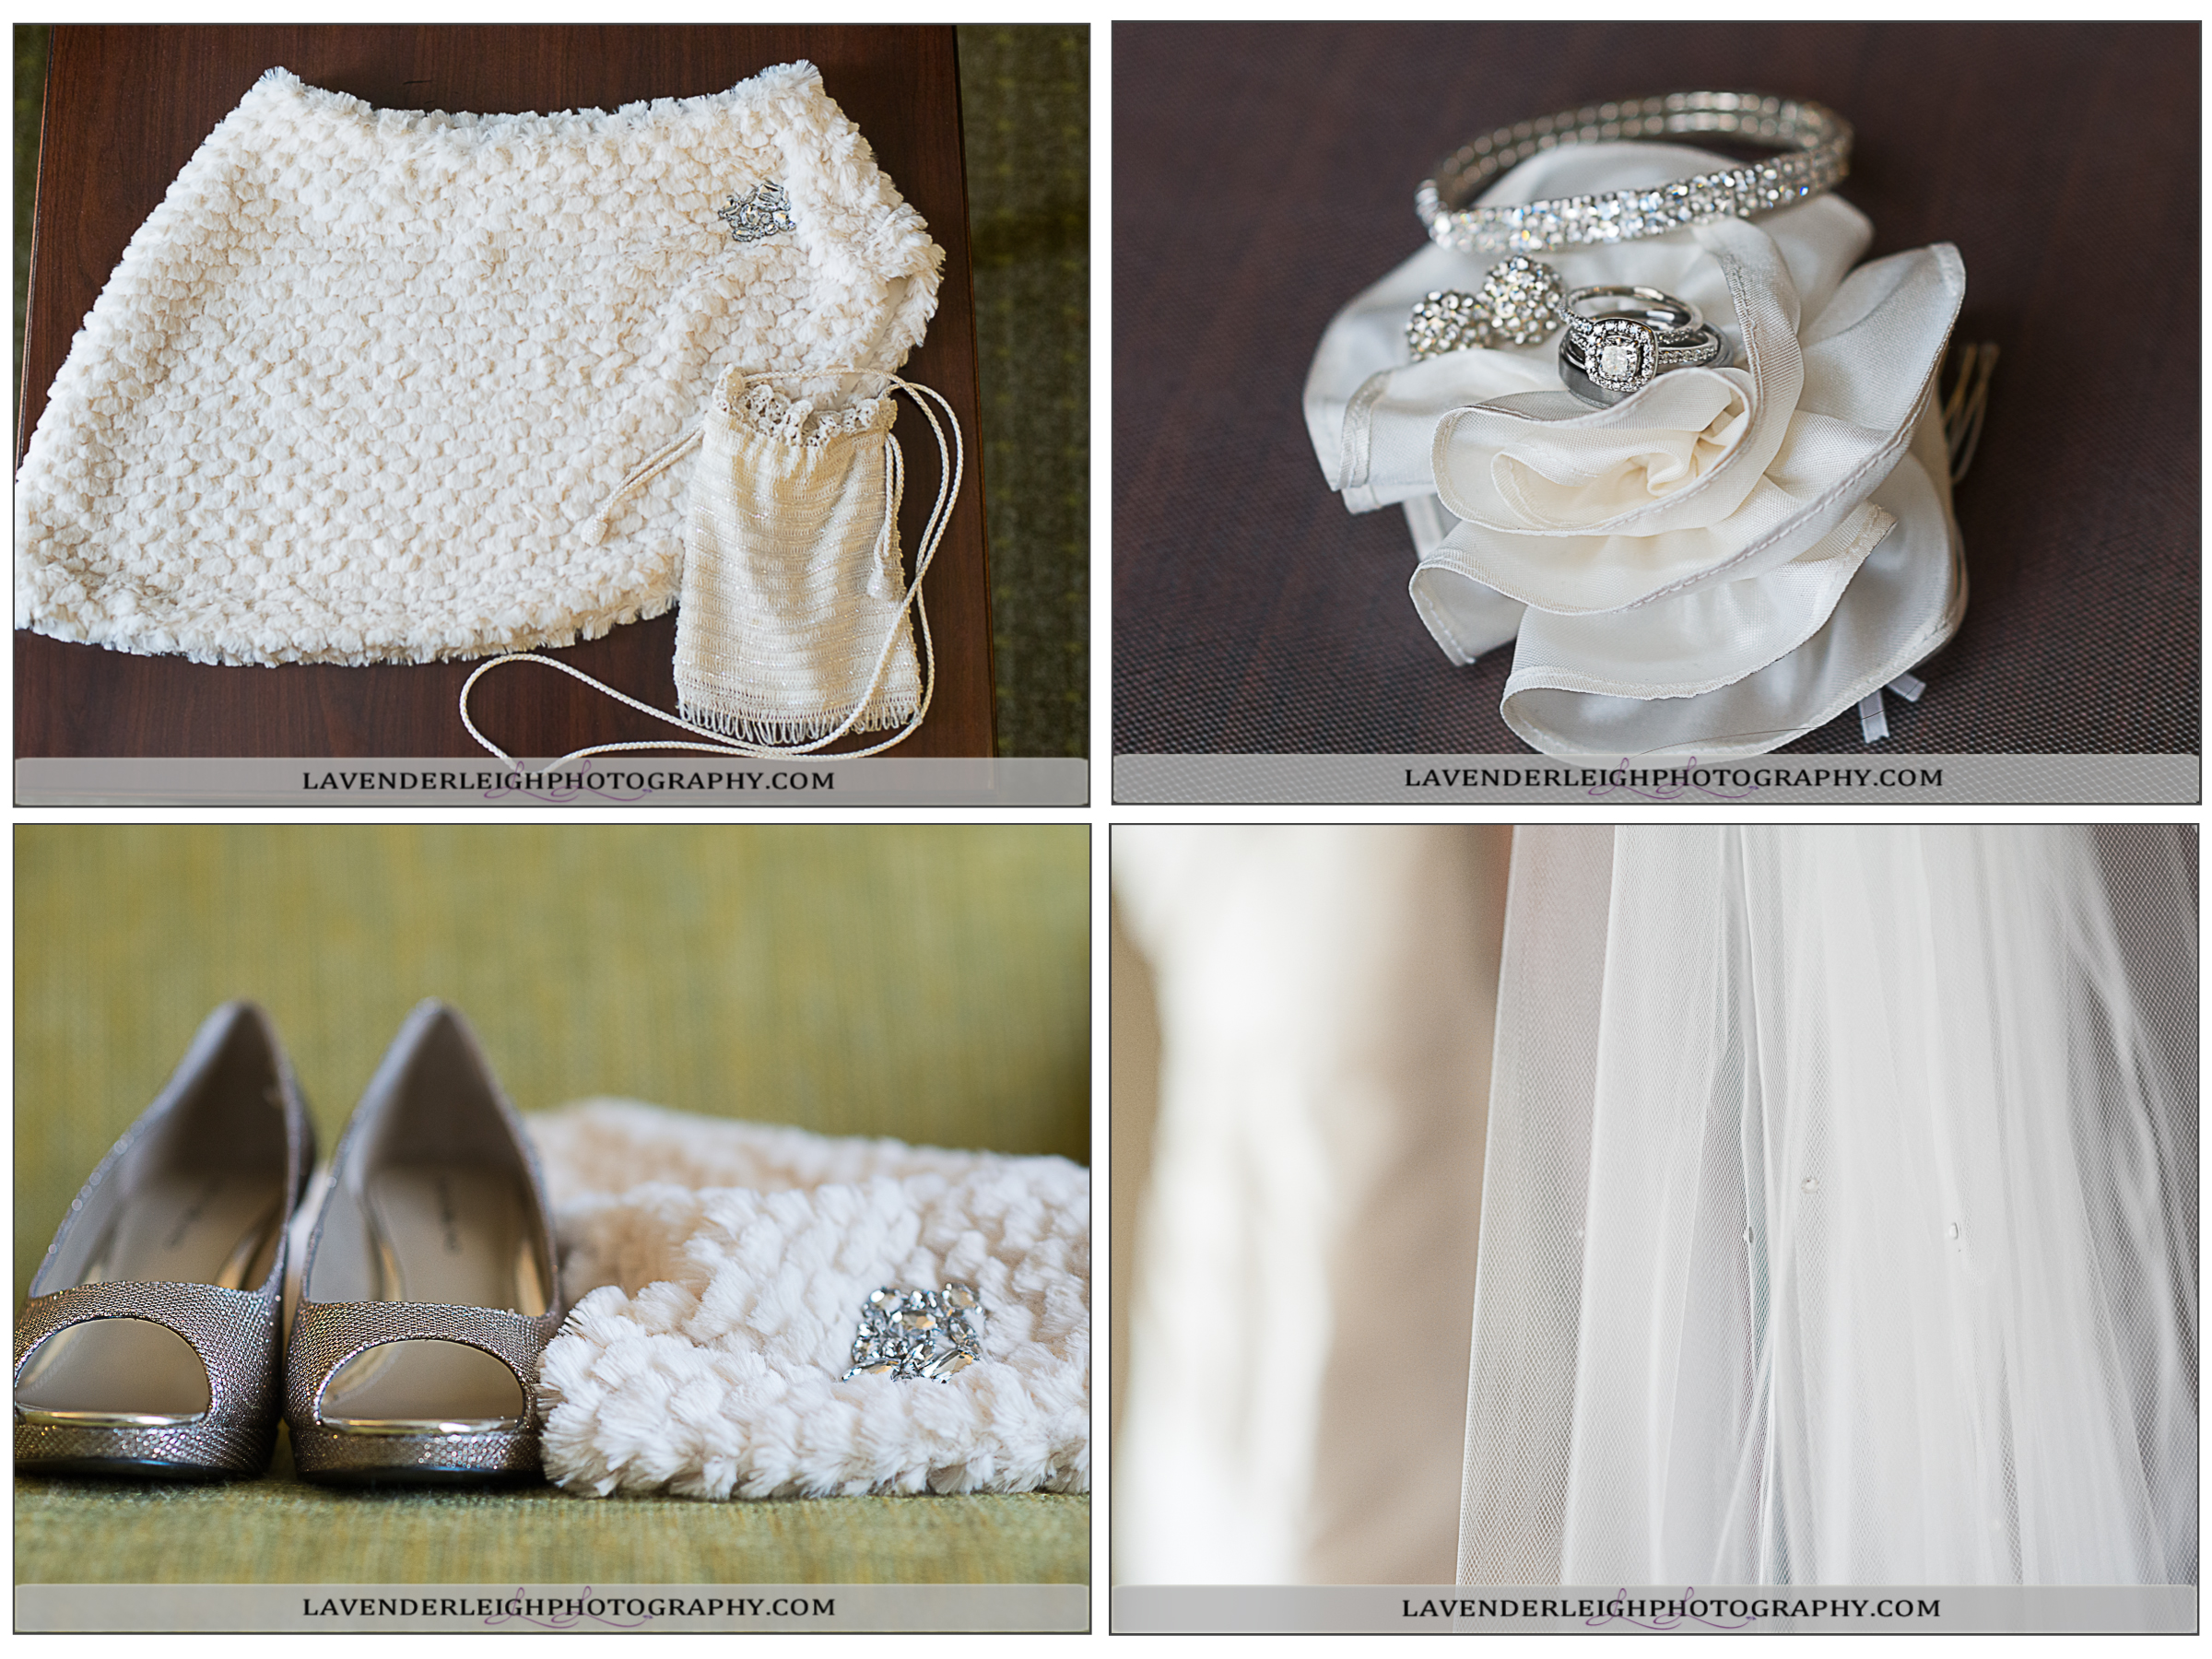 Wedding Details: Shoes, Purse, Rings, Jewelry | Lavender Leigh Photography